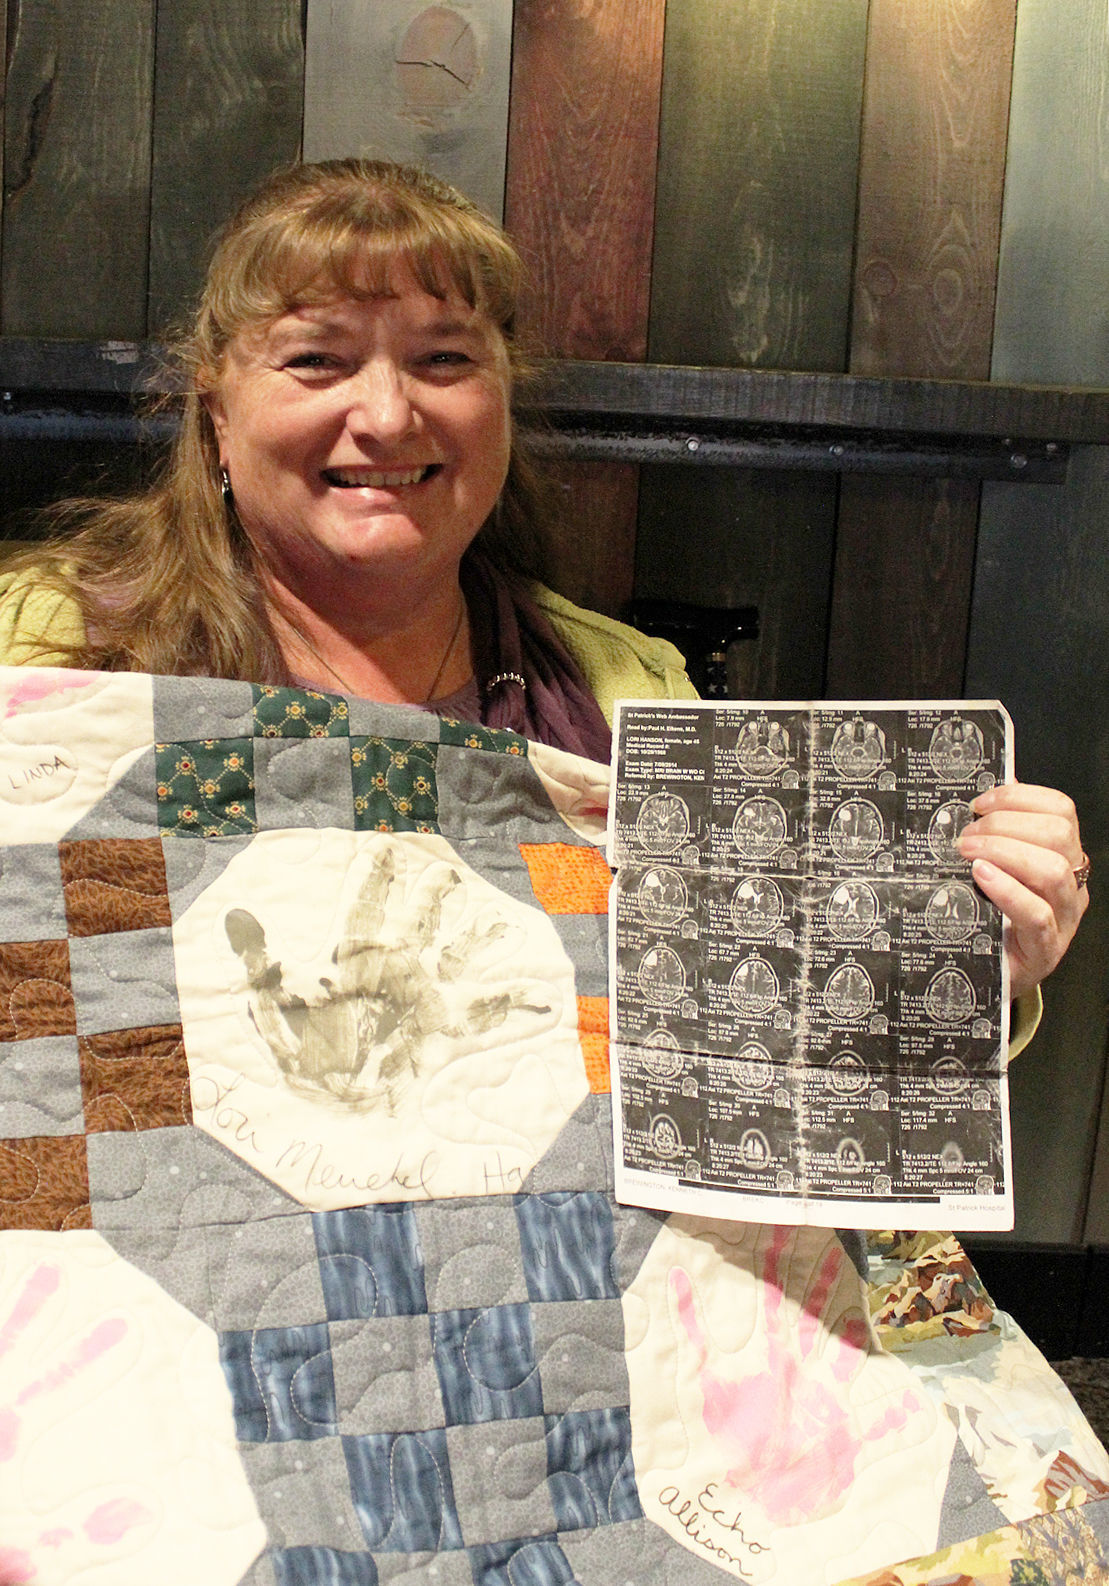 Colors Lori with MRI and quilt 2